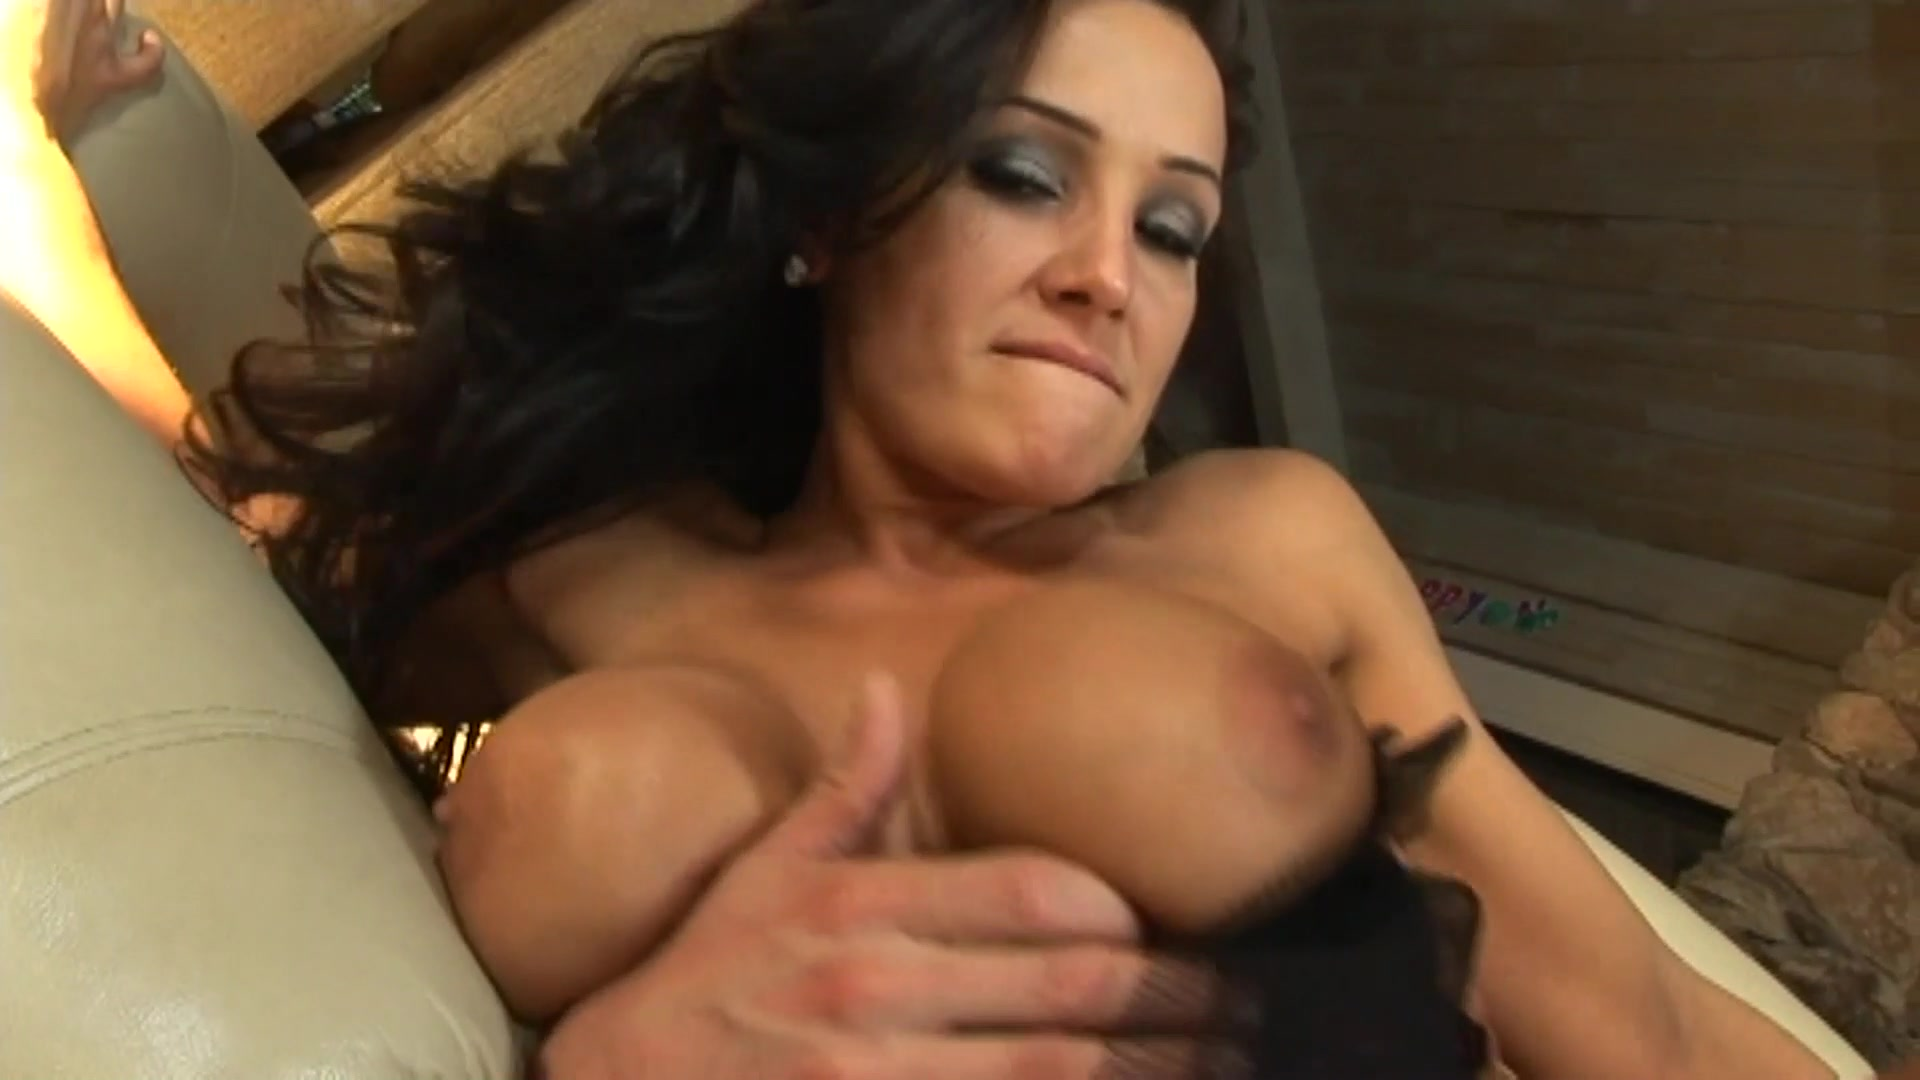 Fuck Me In The Mouth stepbrother please fuck me hard and give me cumshot in my